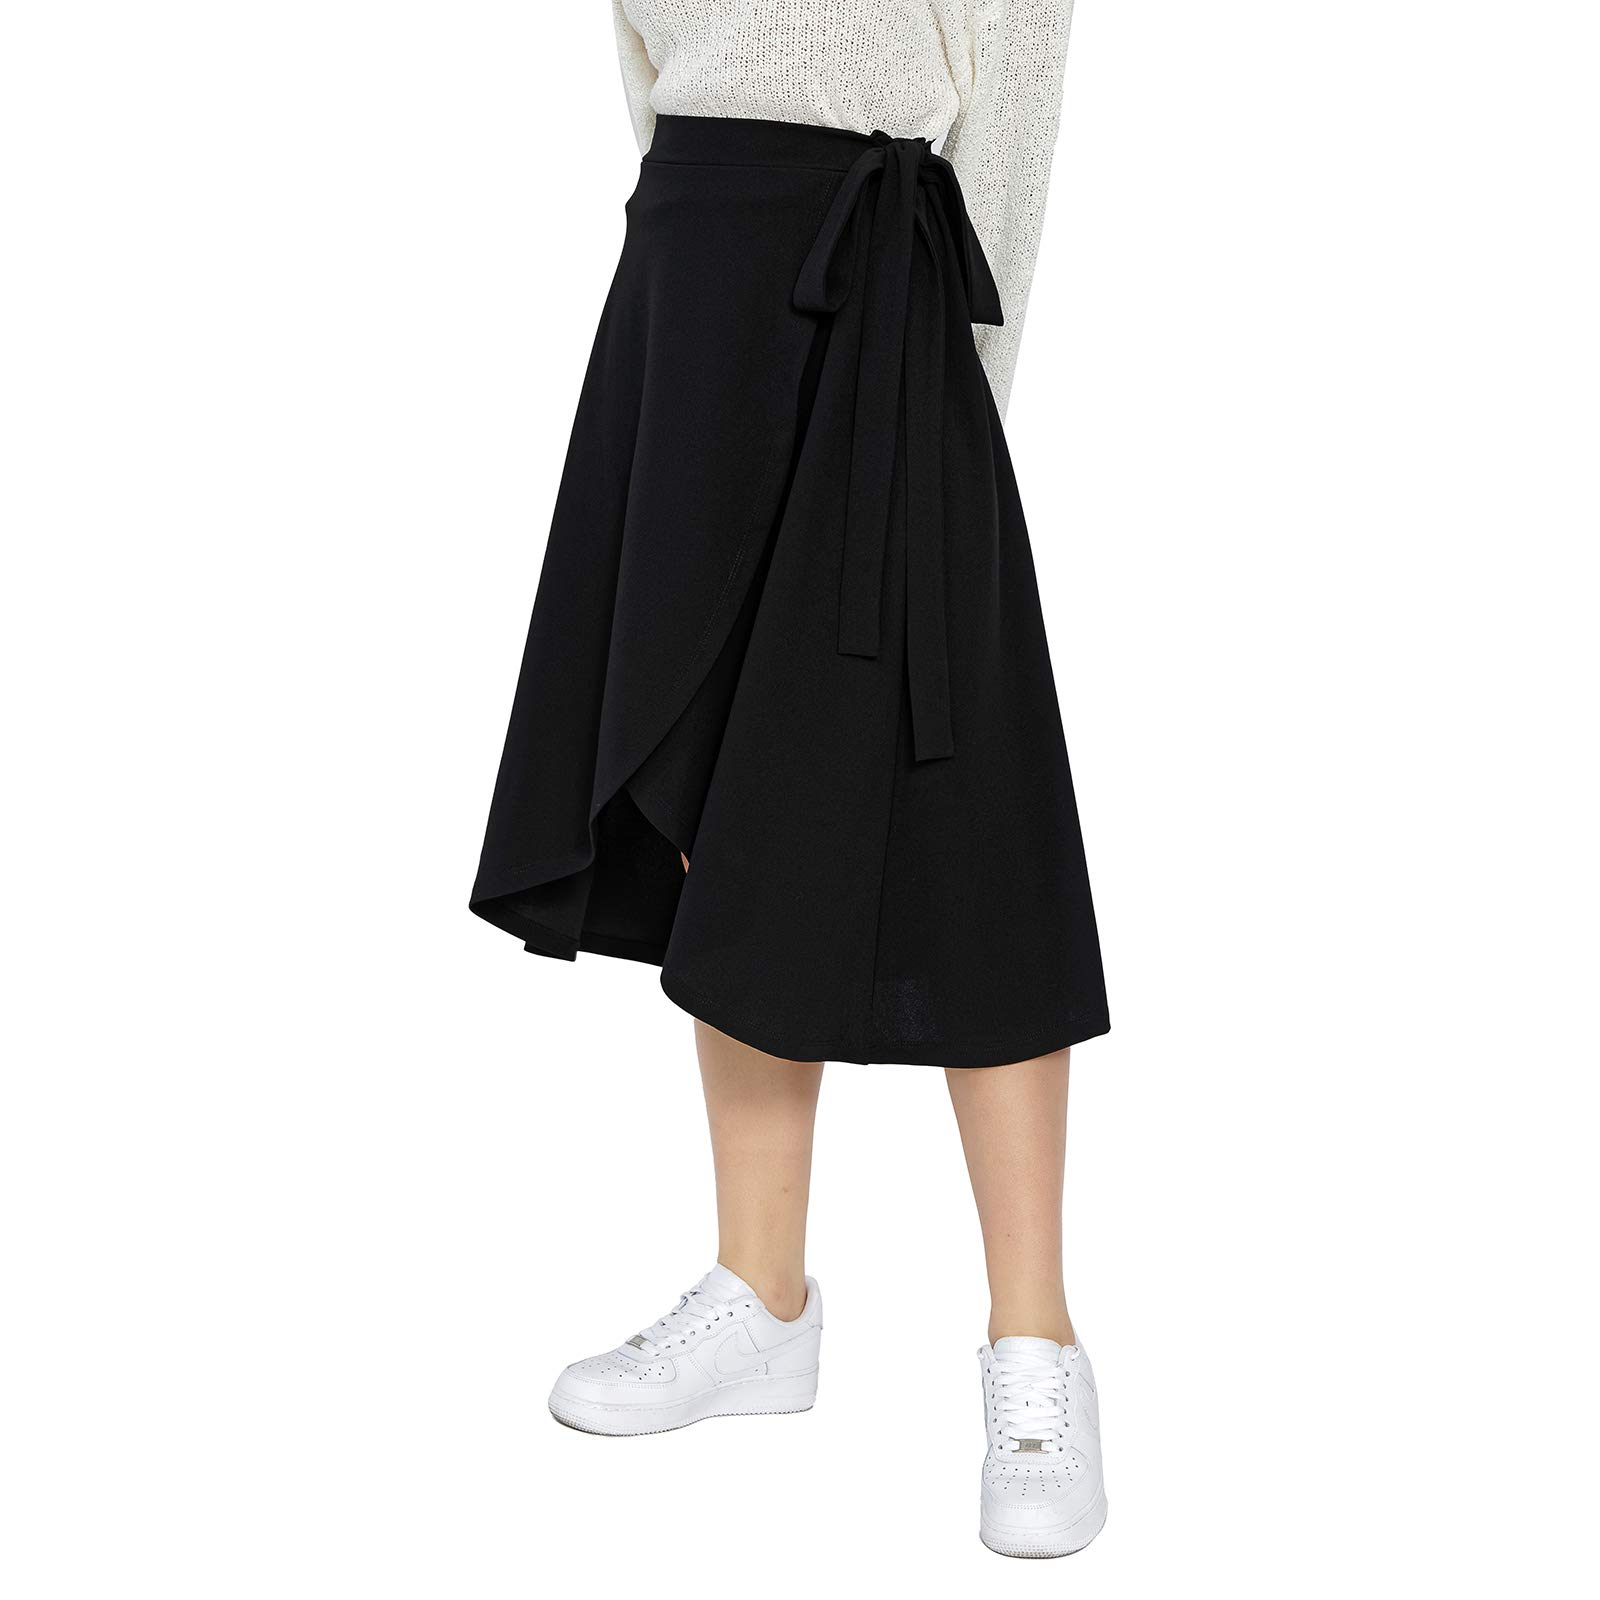 CCIMAGE Faux Wrap Midi Skirt Casual Tie Knot Swing Skirt for Women